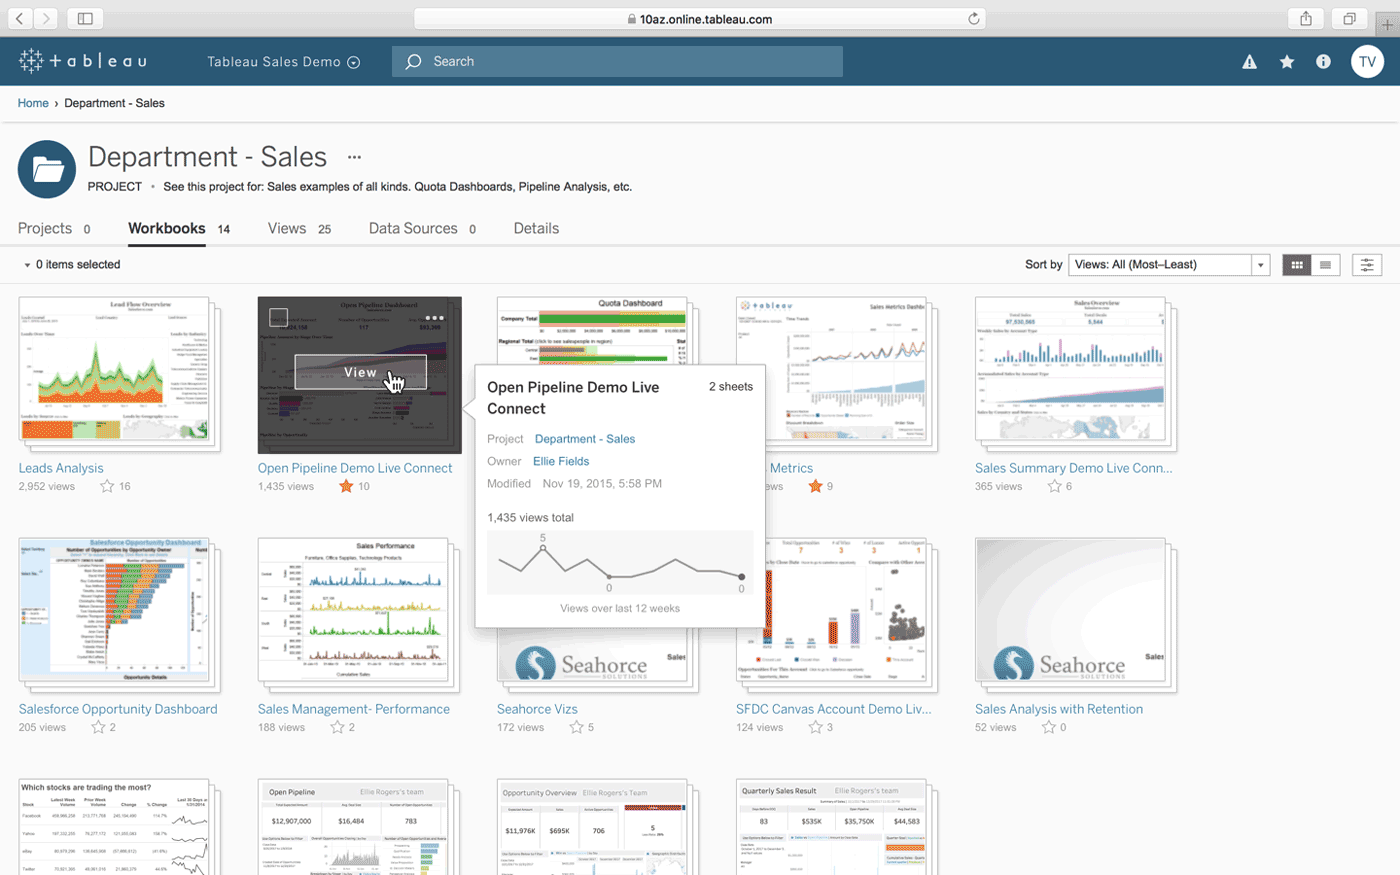 tableau viewer user interface showing information about dashboard view